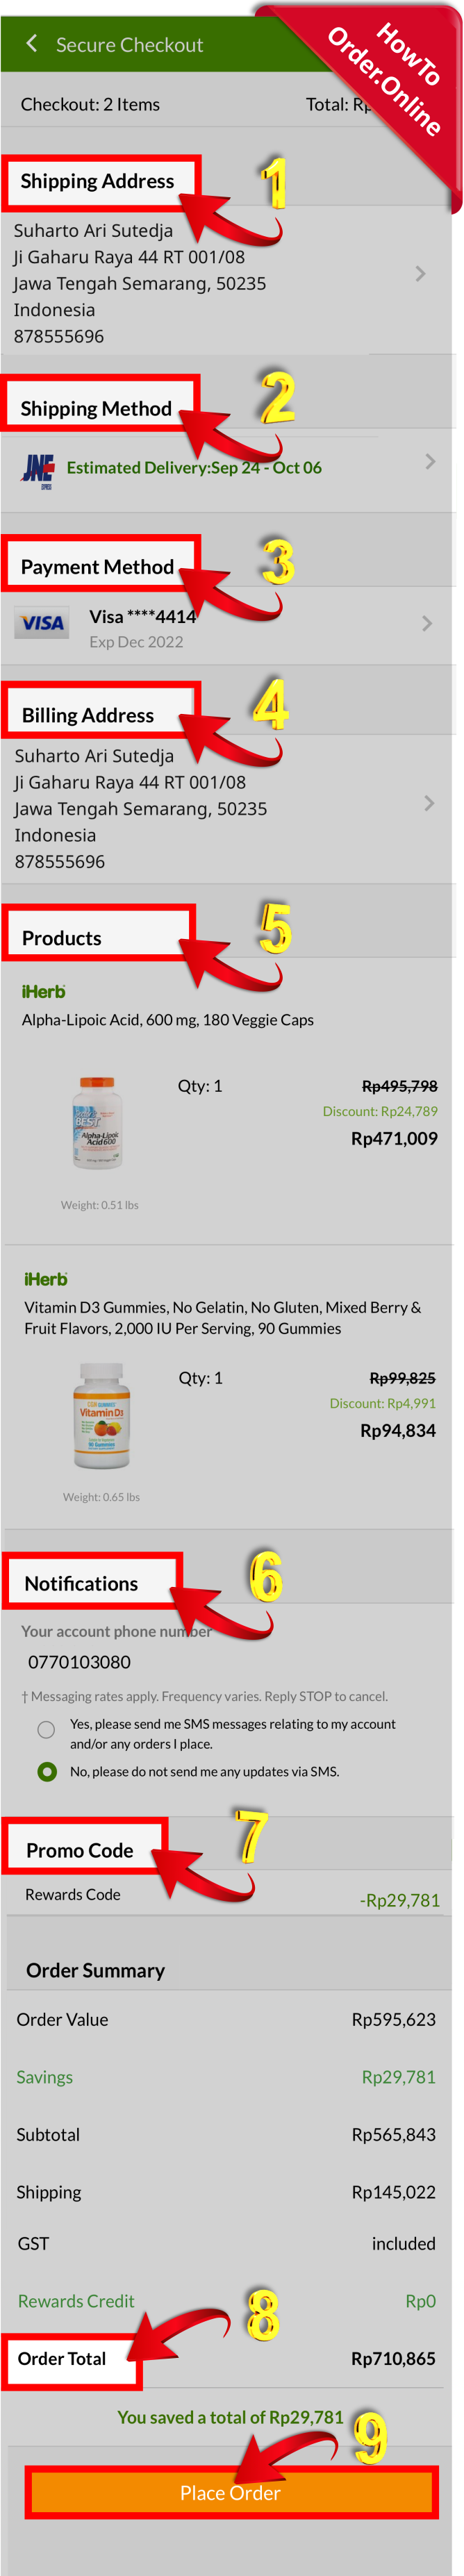 28-Reviewing iherb order then finally placing it_Mobile Screenshot_ID